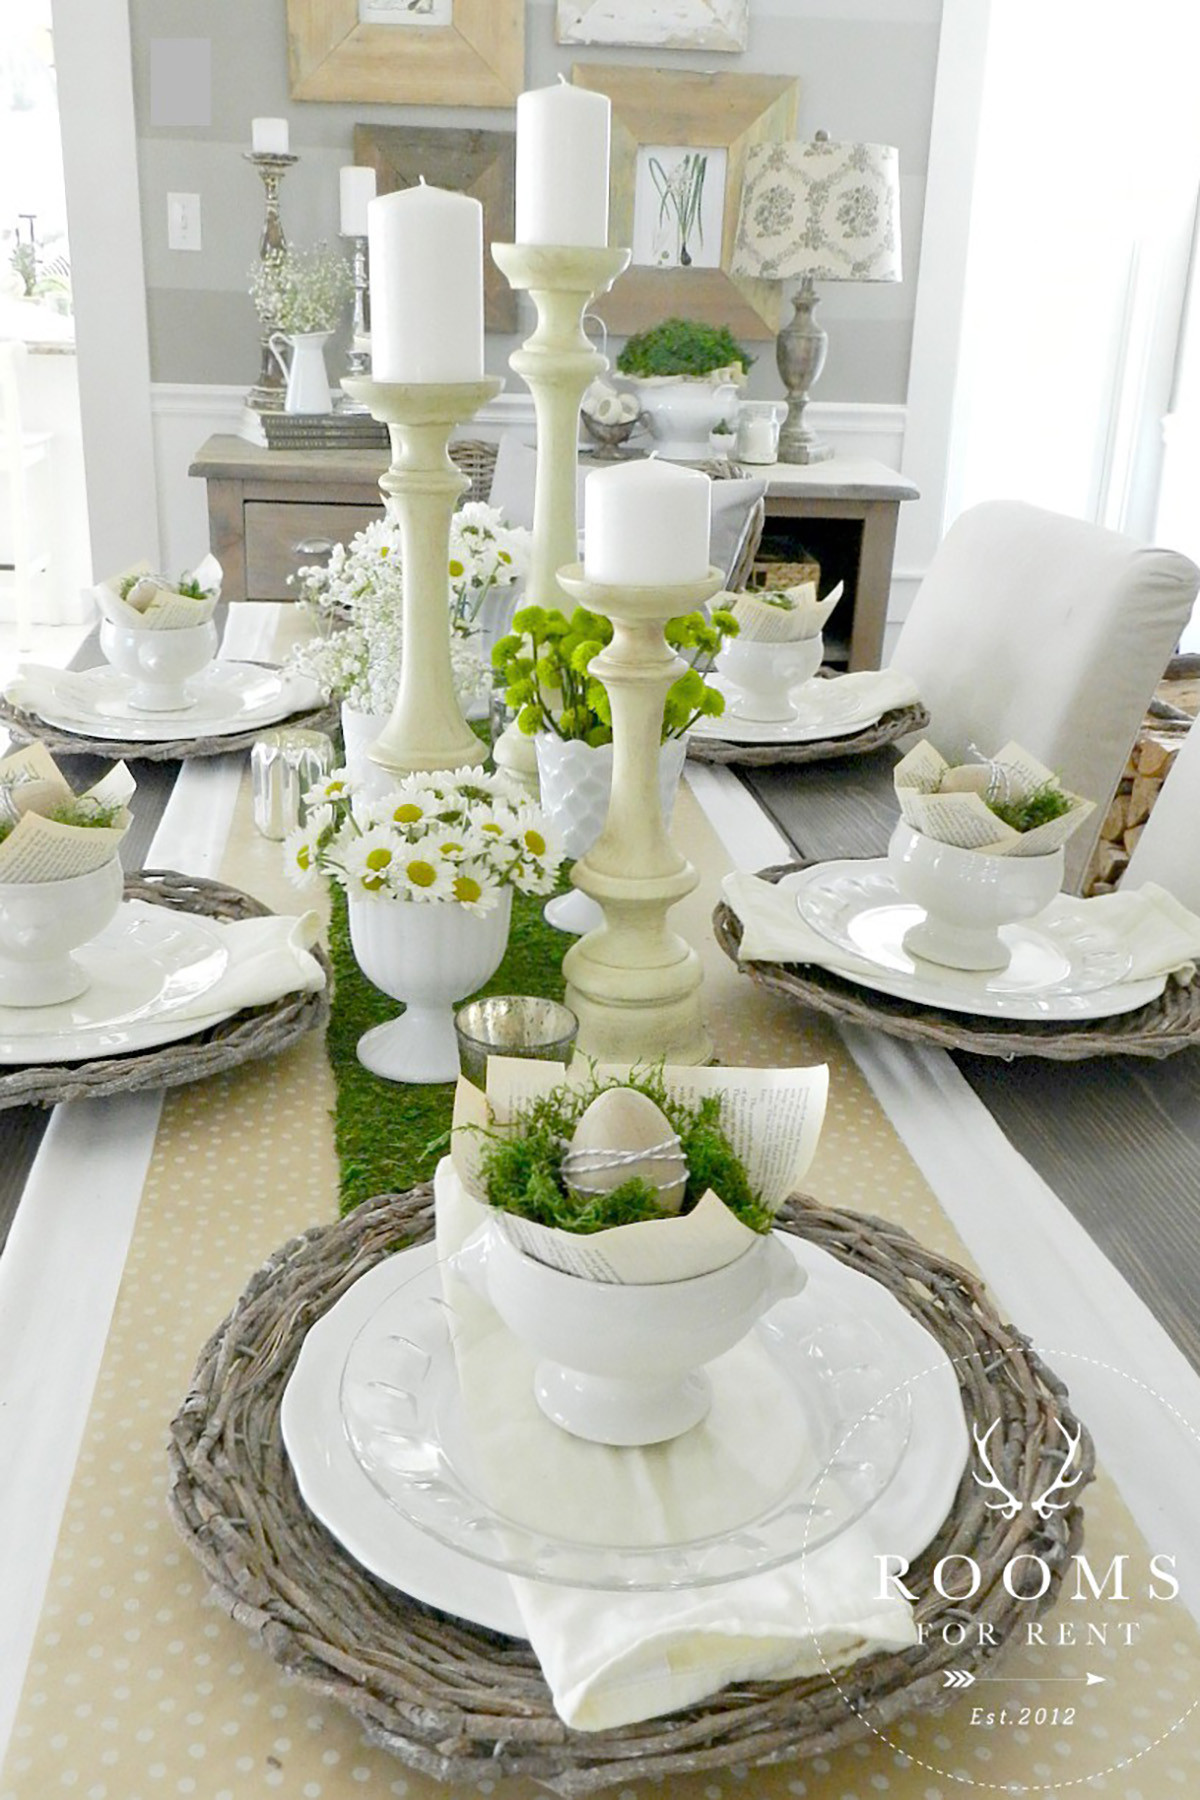 Easter Dinner Table Decorations  25 Easter Table Decorations Centerpieces for Easter